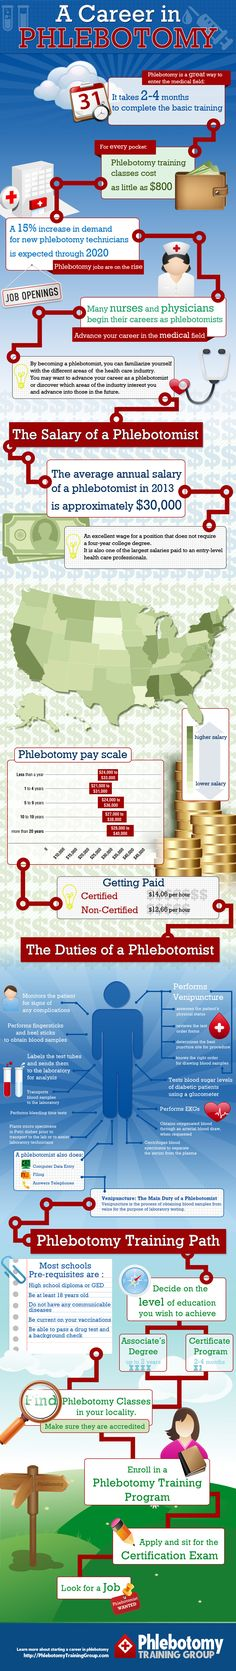 Infographic: A Career in Phlebotomy